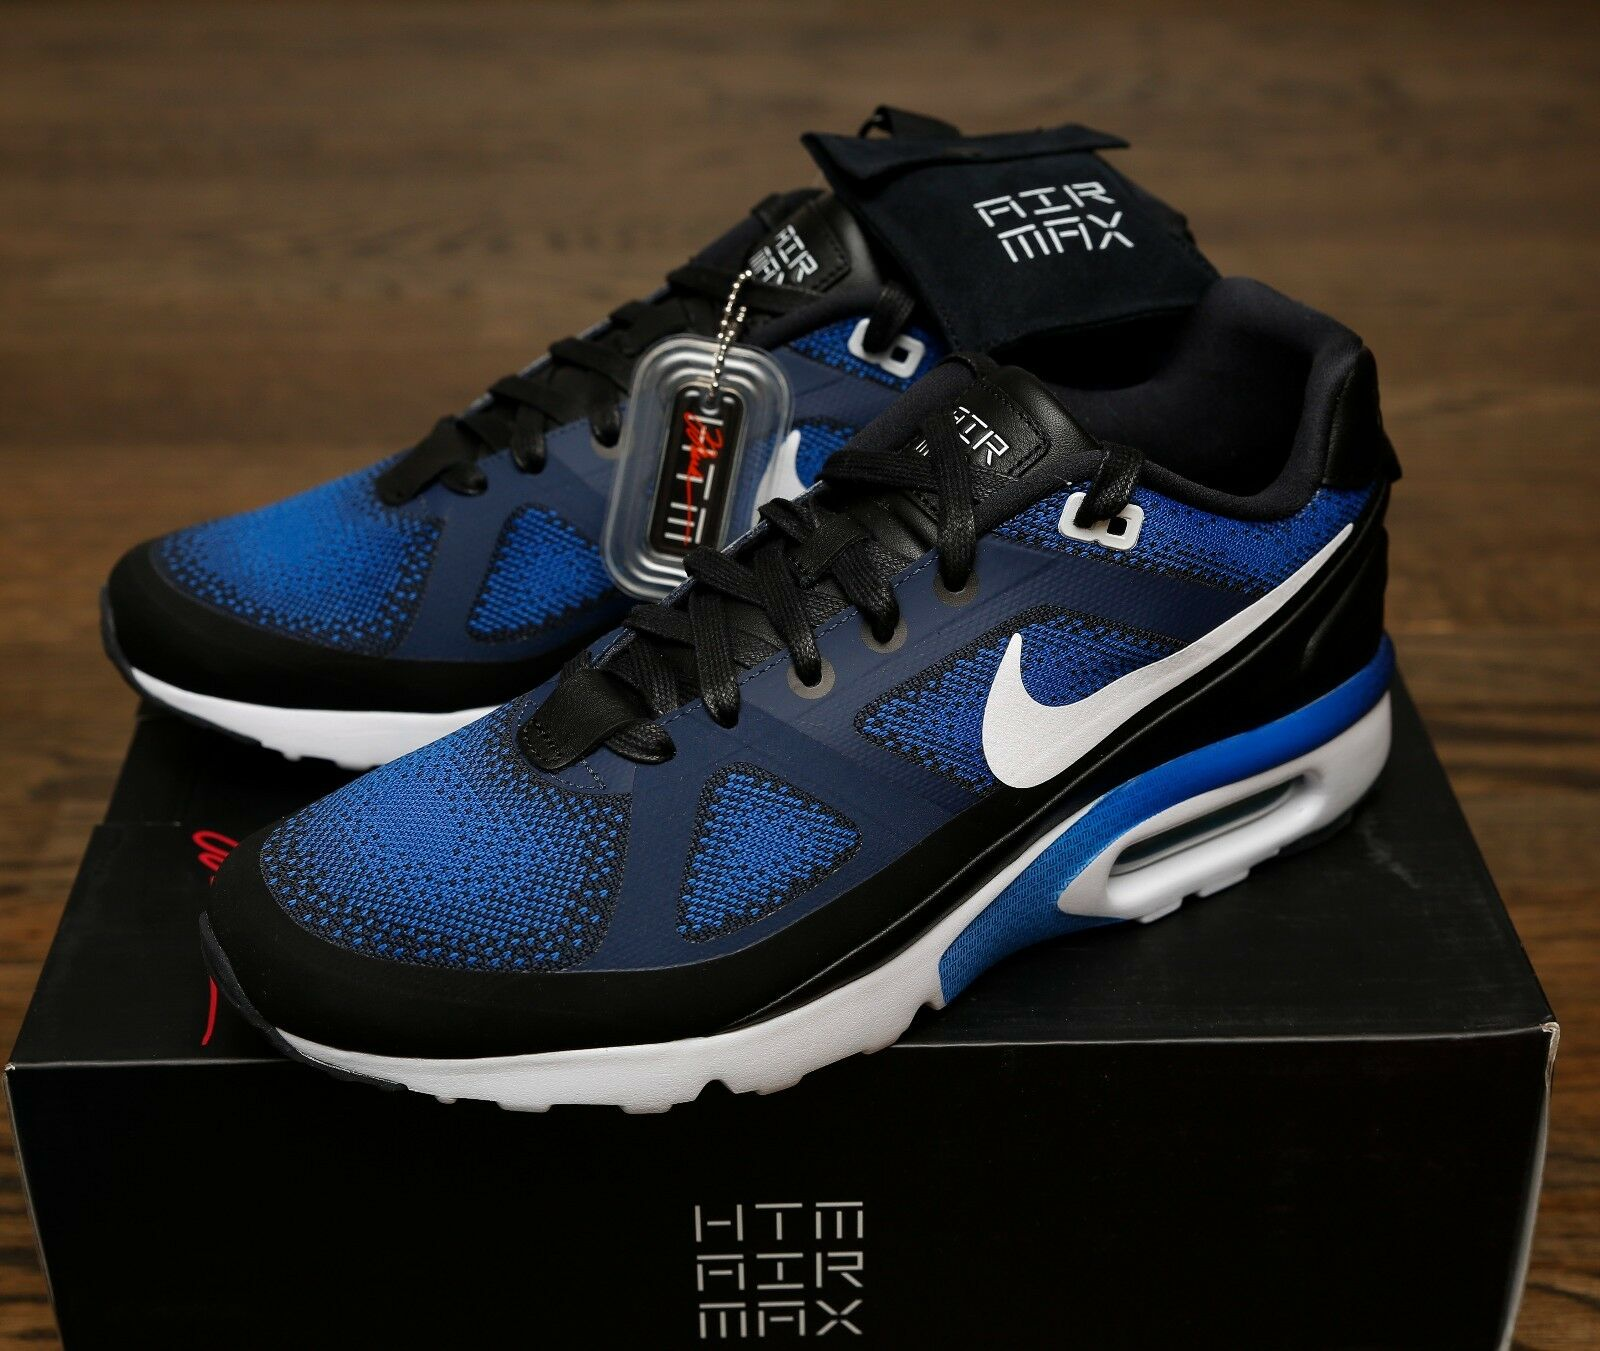 New Nike Air Max Ultra M Mark Parker HTM Limited 10.5 100% Authentic 848625-401